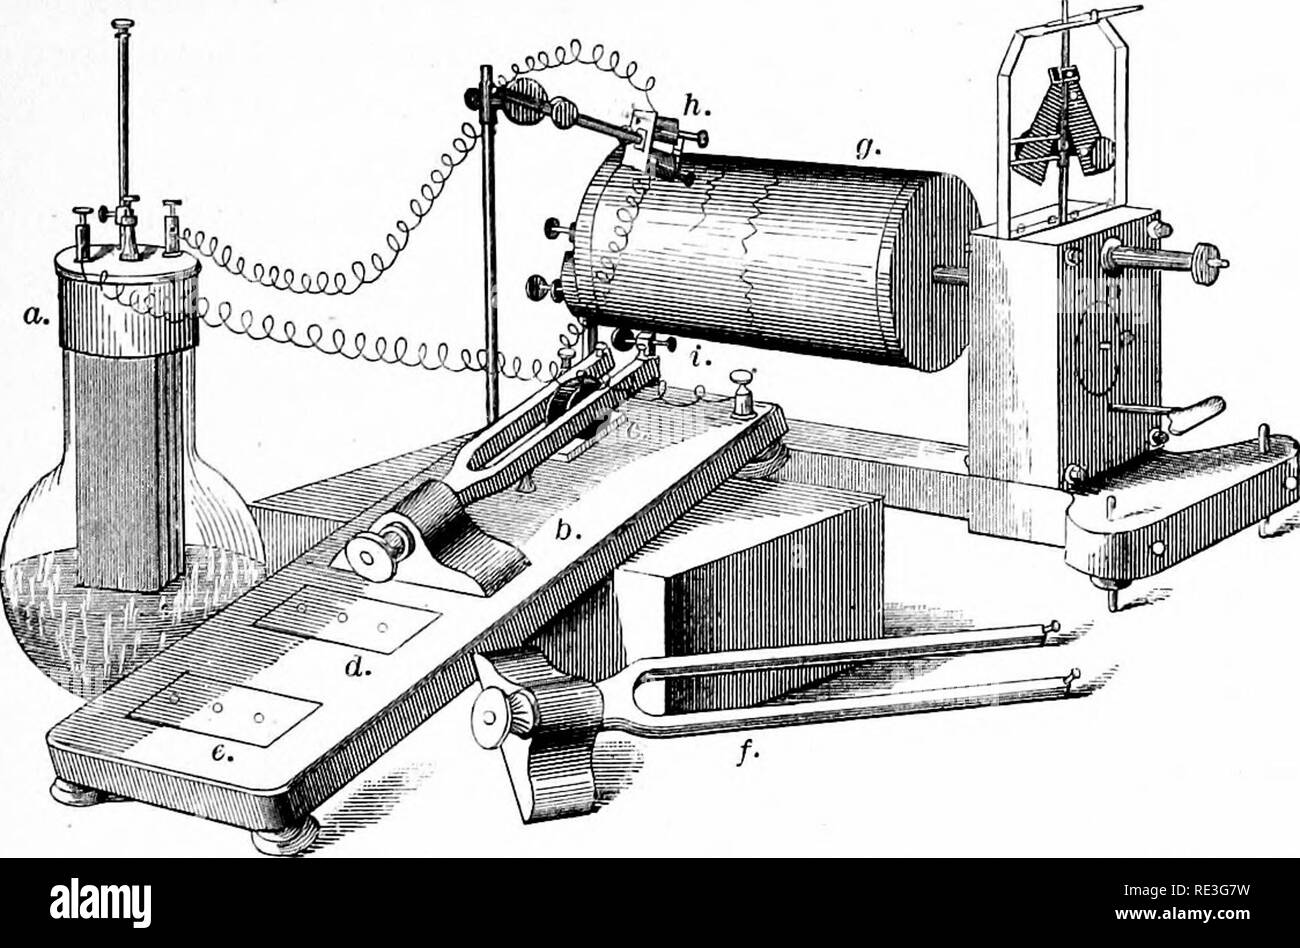 . A text-book of animal physiology, with introductory chapters on general biology and a full treatment of reproduction ... Physiology, Comparative. APPLICATIONS OP THE GRAPHIC METHOD. 173 little mass of steel attached to it, the whole working in unison with the tuning-fork, so that an interruption of the current. Fio. 166.—Marey's chronograph as applied to revolving cylinder (after McKendrick). a. gal- vanic element; 6, wooden stand bearing tuning-fork (two hundred vibrations per second); c, electro-magnet between limbs of tuning-fork ; d, e, positions for tuning-forks of one hun- dred and fif - Stock Image